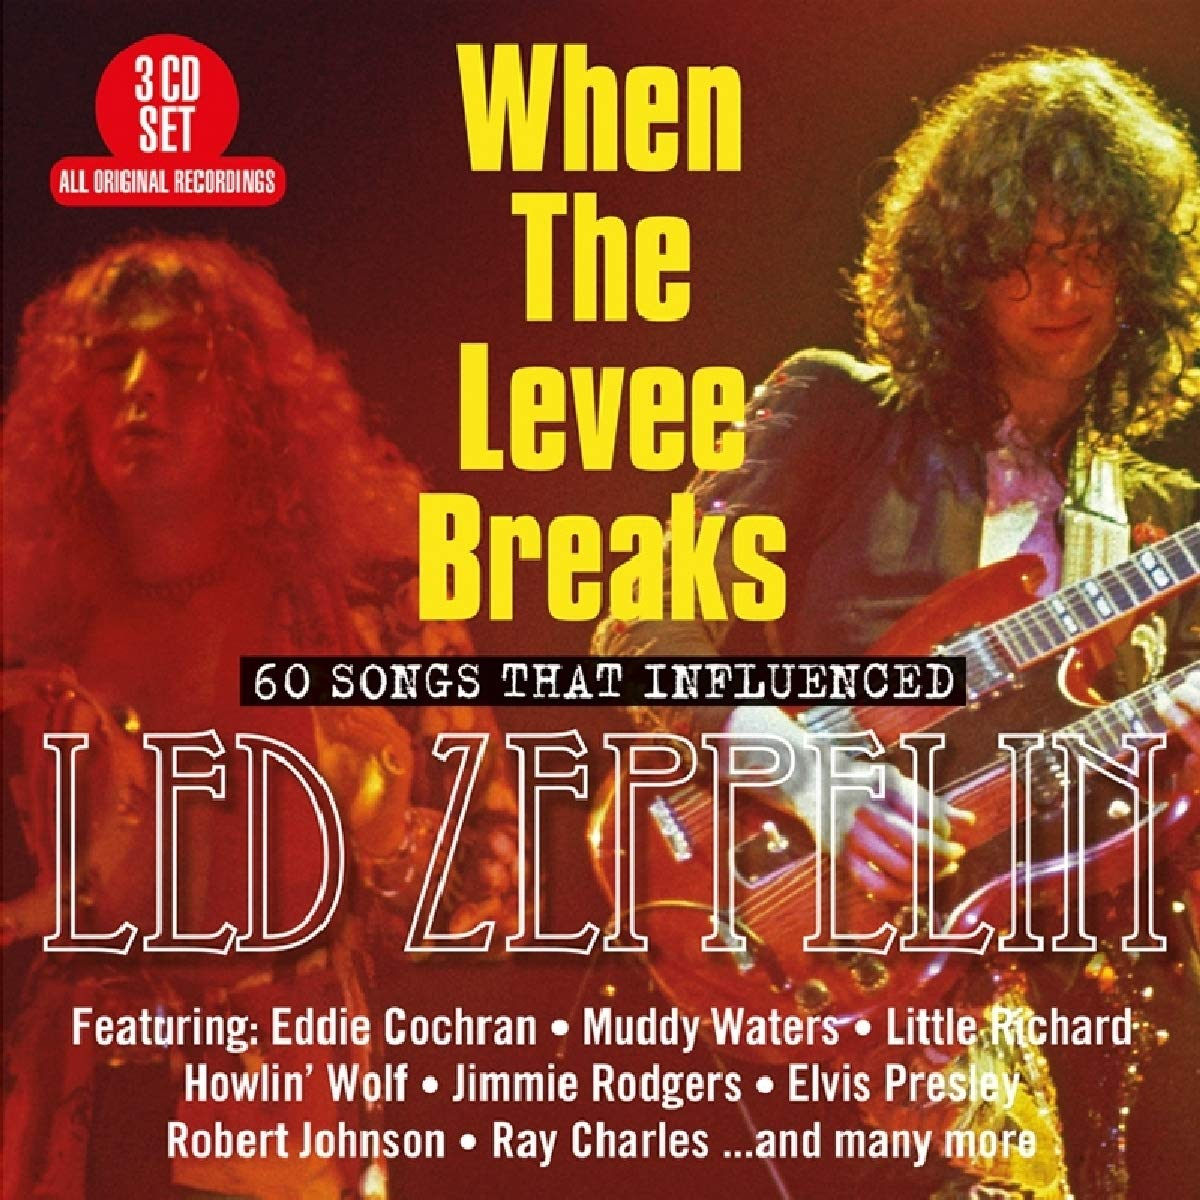 VARIOUS ARTISTS - When The Levee Breaks: 60 Songs That Influenced Led  Zeppelin / Various - Amazon.com Music